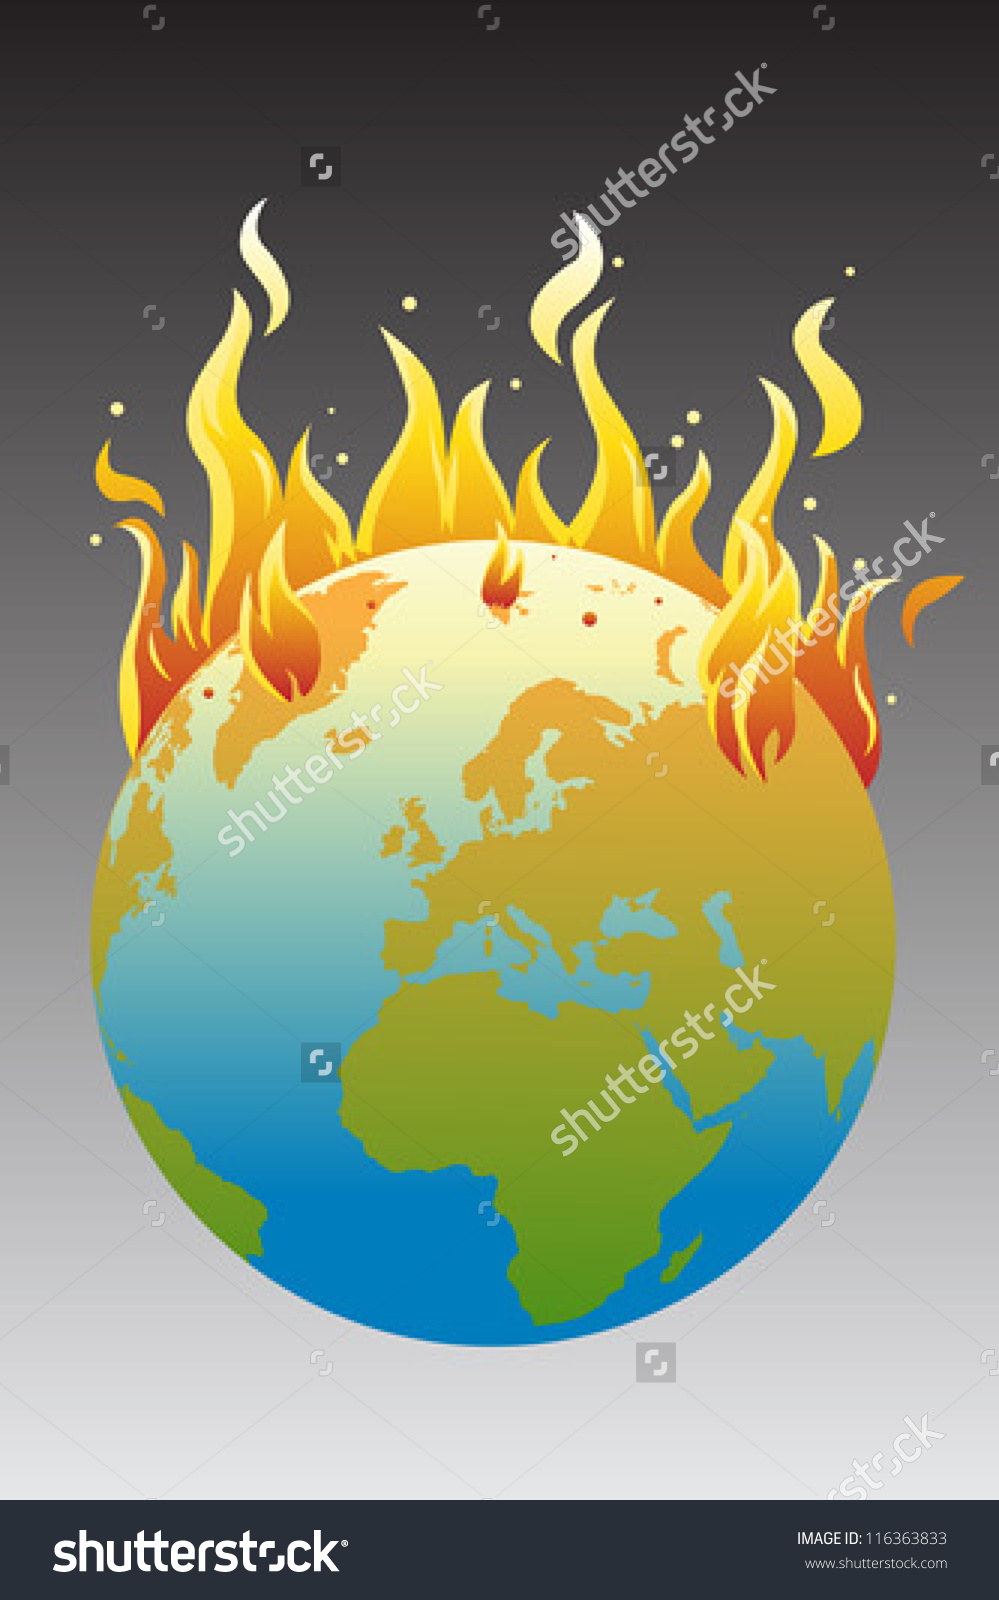 Vector Illustration Burning Earth Global Warming Stock Vector.